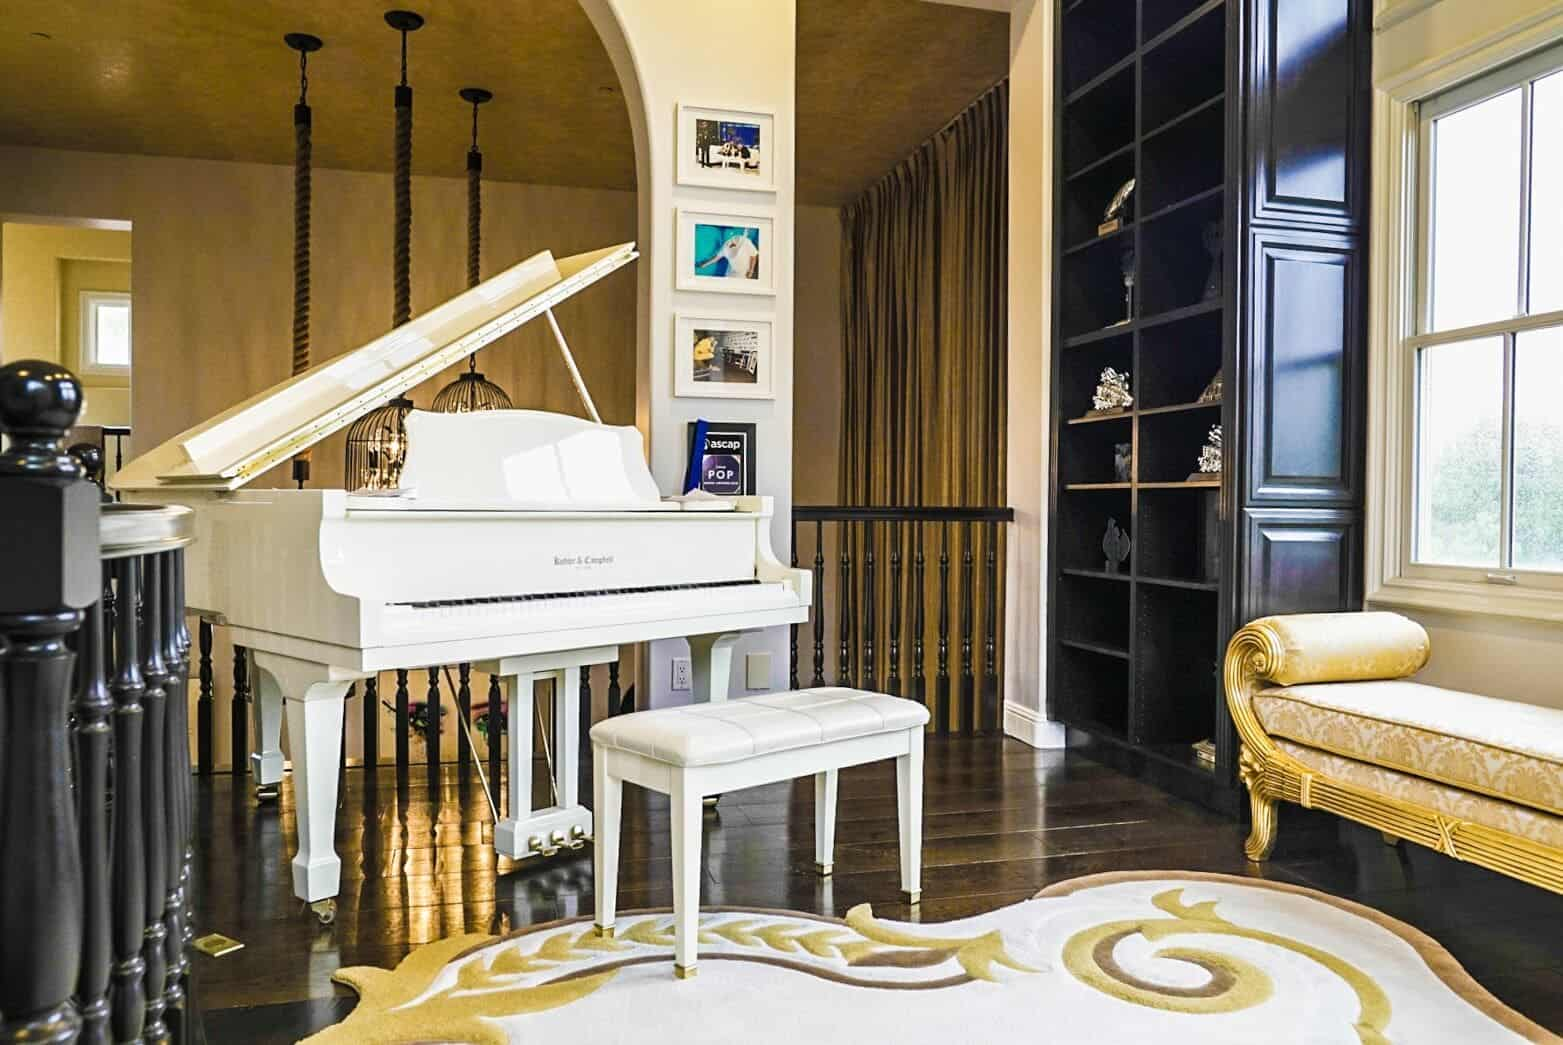 On the second floor, there's a small living space featuring a classy seat on the side along with a white grand piano. The hardwood flooring is topped by an elegantly-designed area rug. Images courtesy of Toptenrealestatedeals.com.